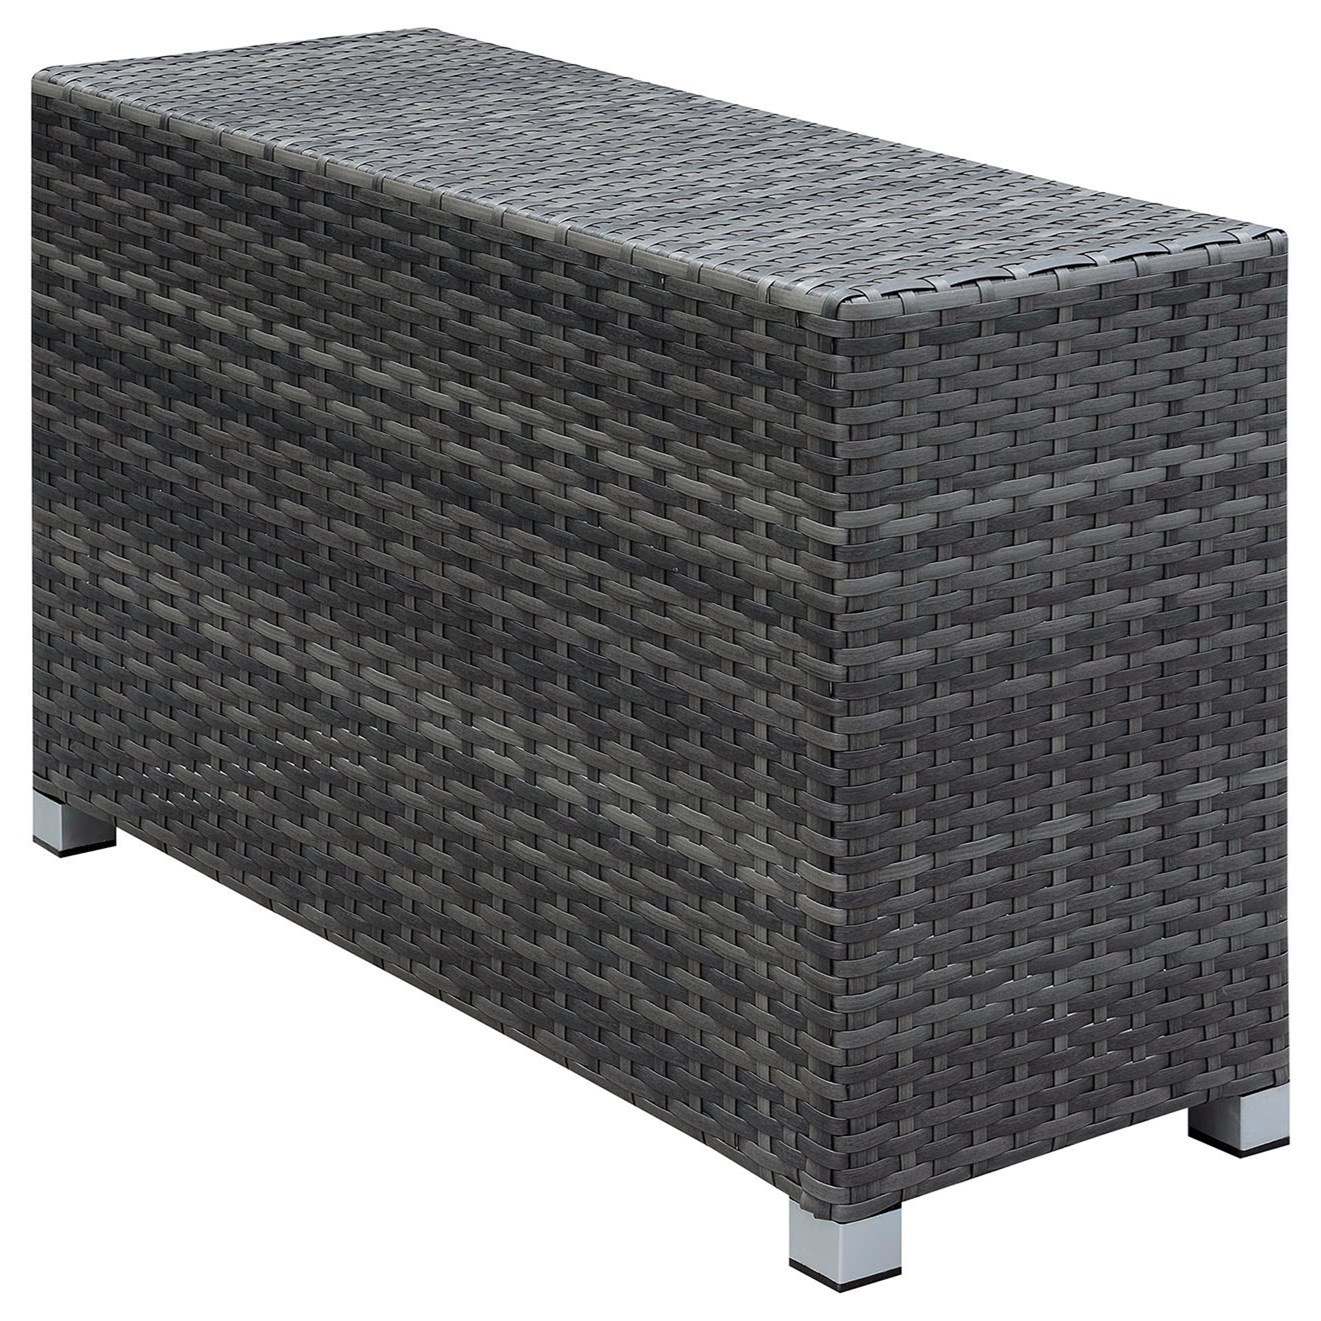 Morgana Coffee Table by Furniture of America at Value City Furniture